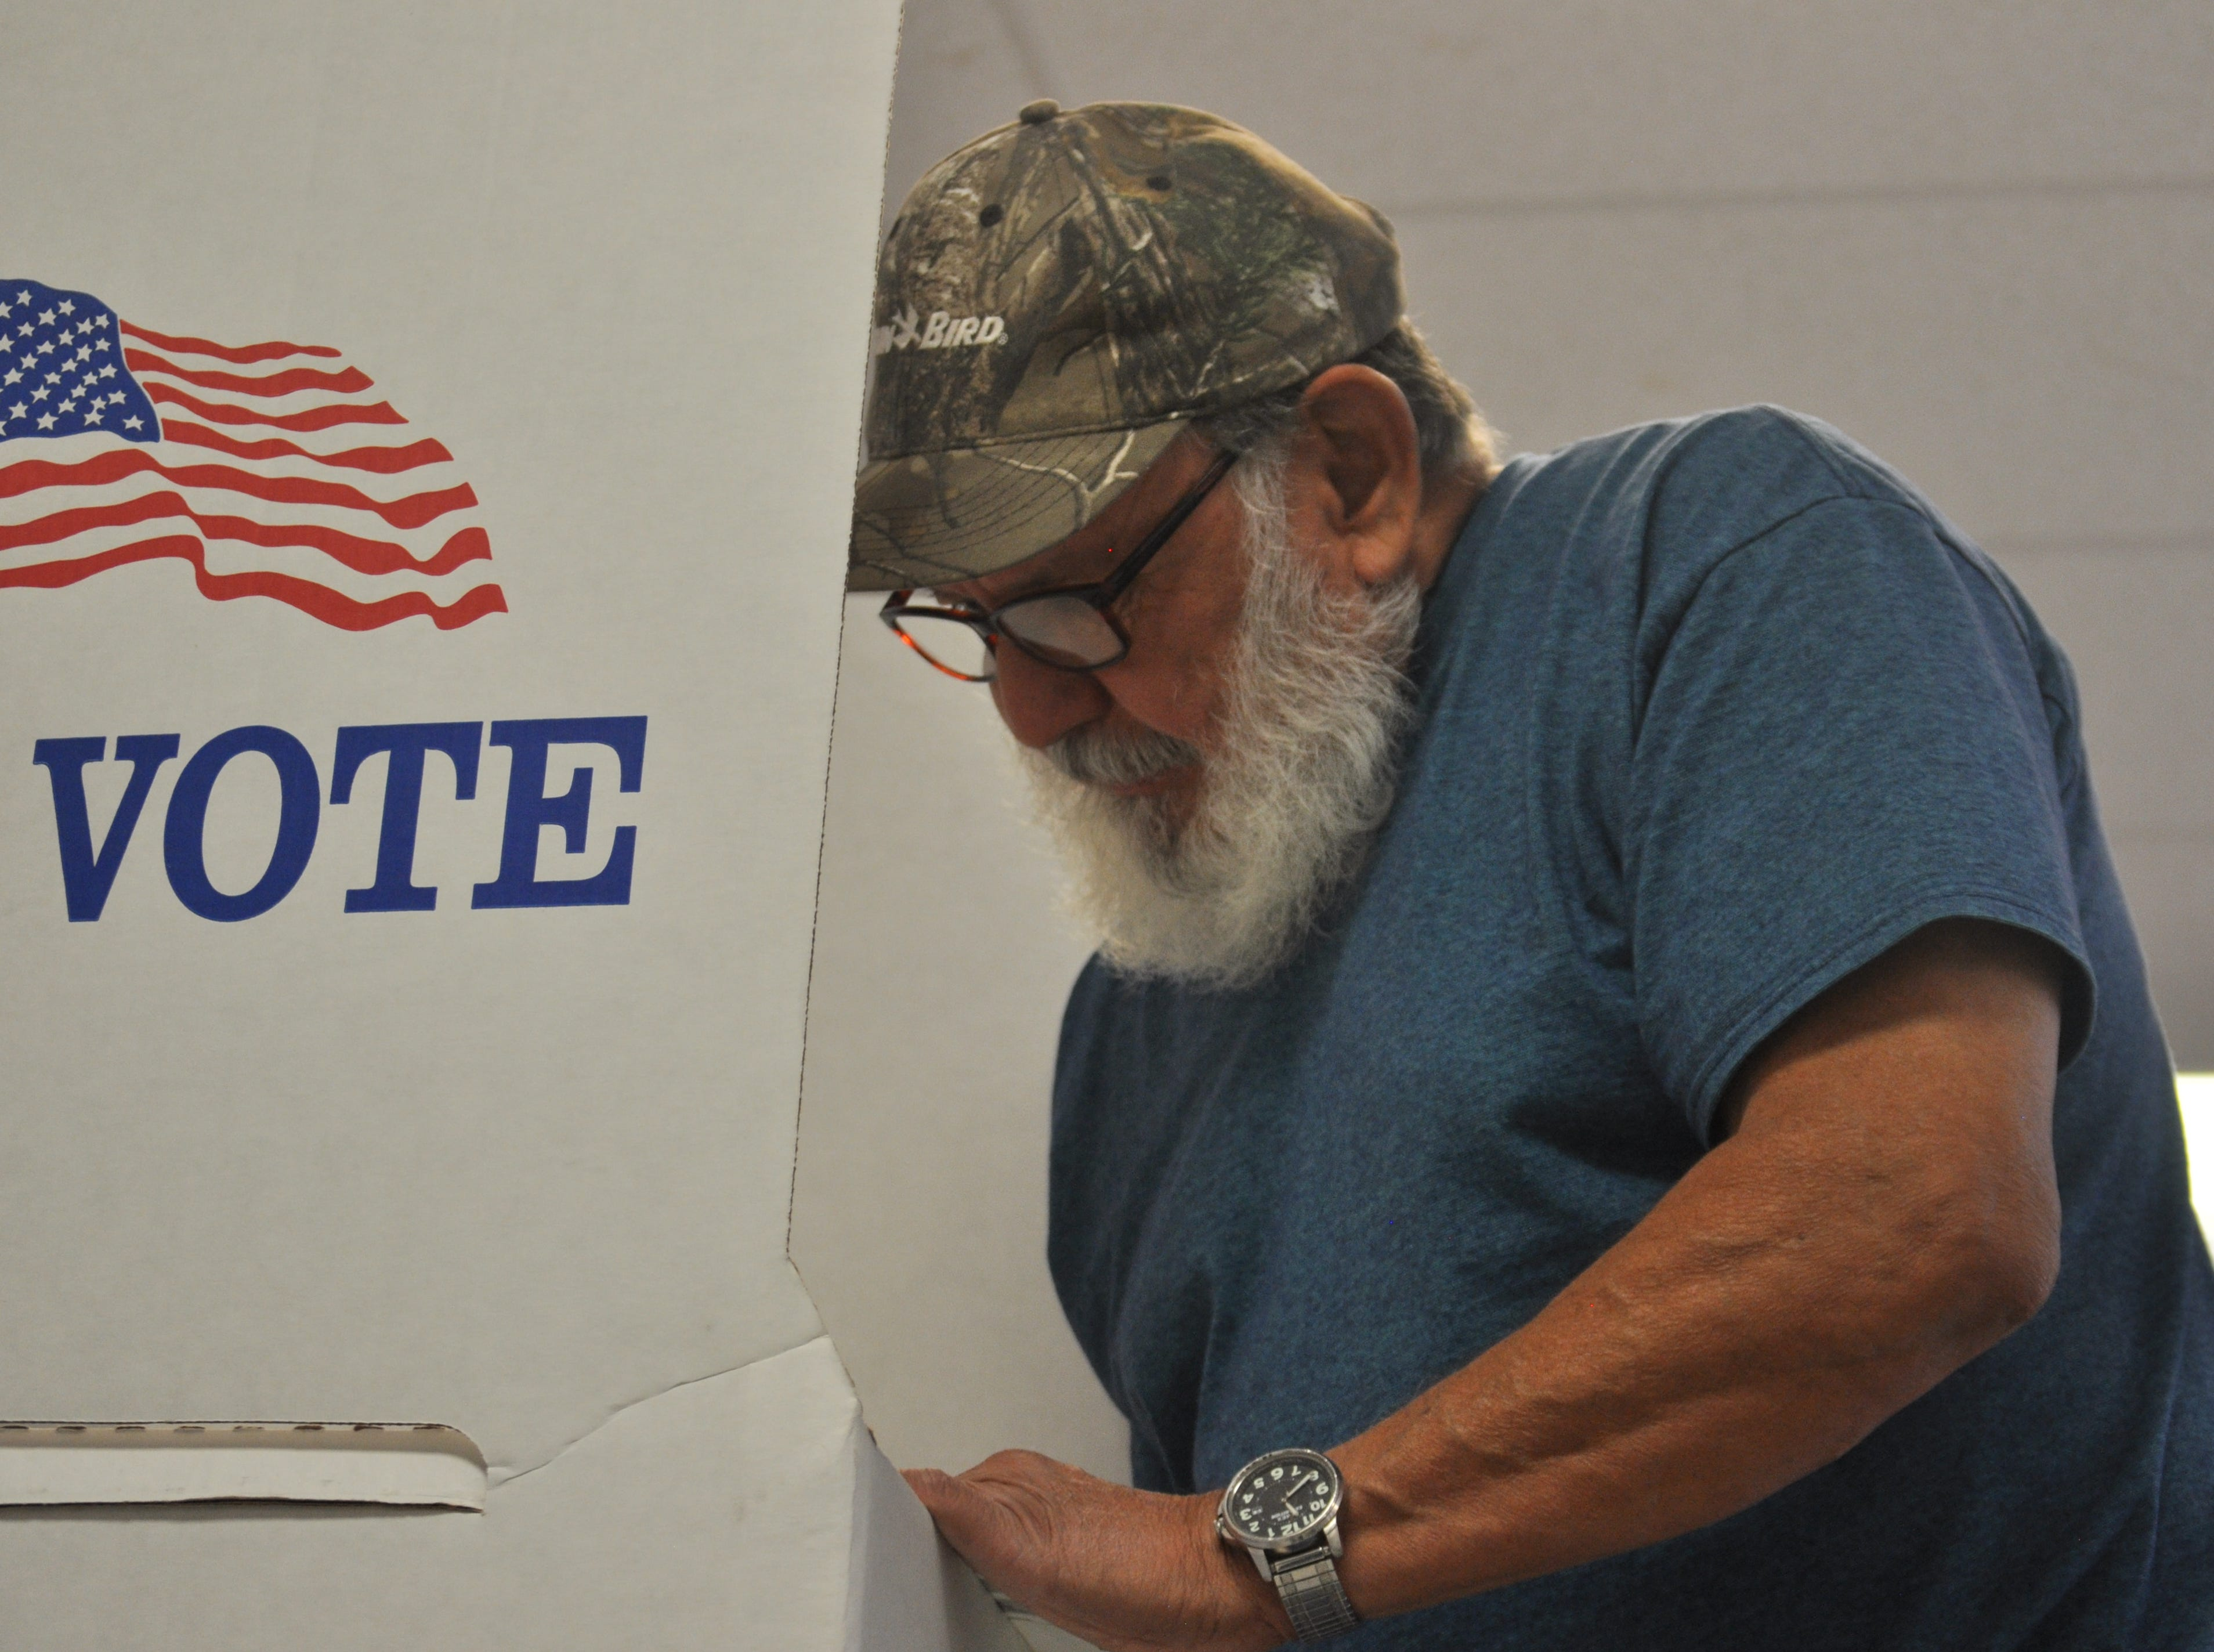 Louis Granger considers who to vote for, Nov. 6, 2018 at the Veterans of Foreign Wars Carlsbad post.